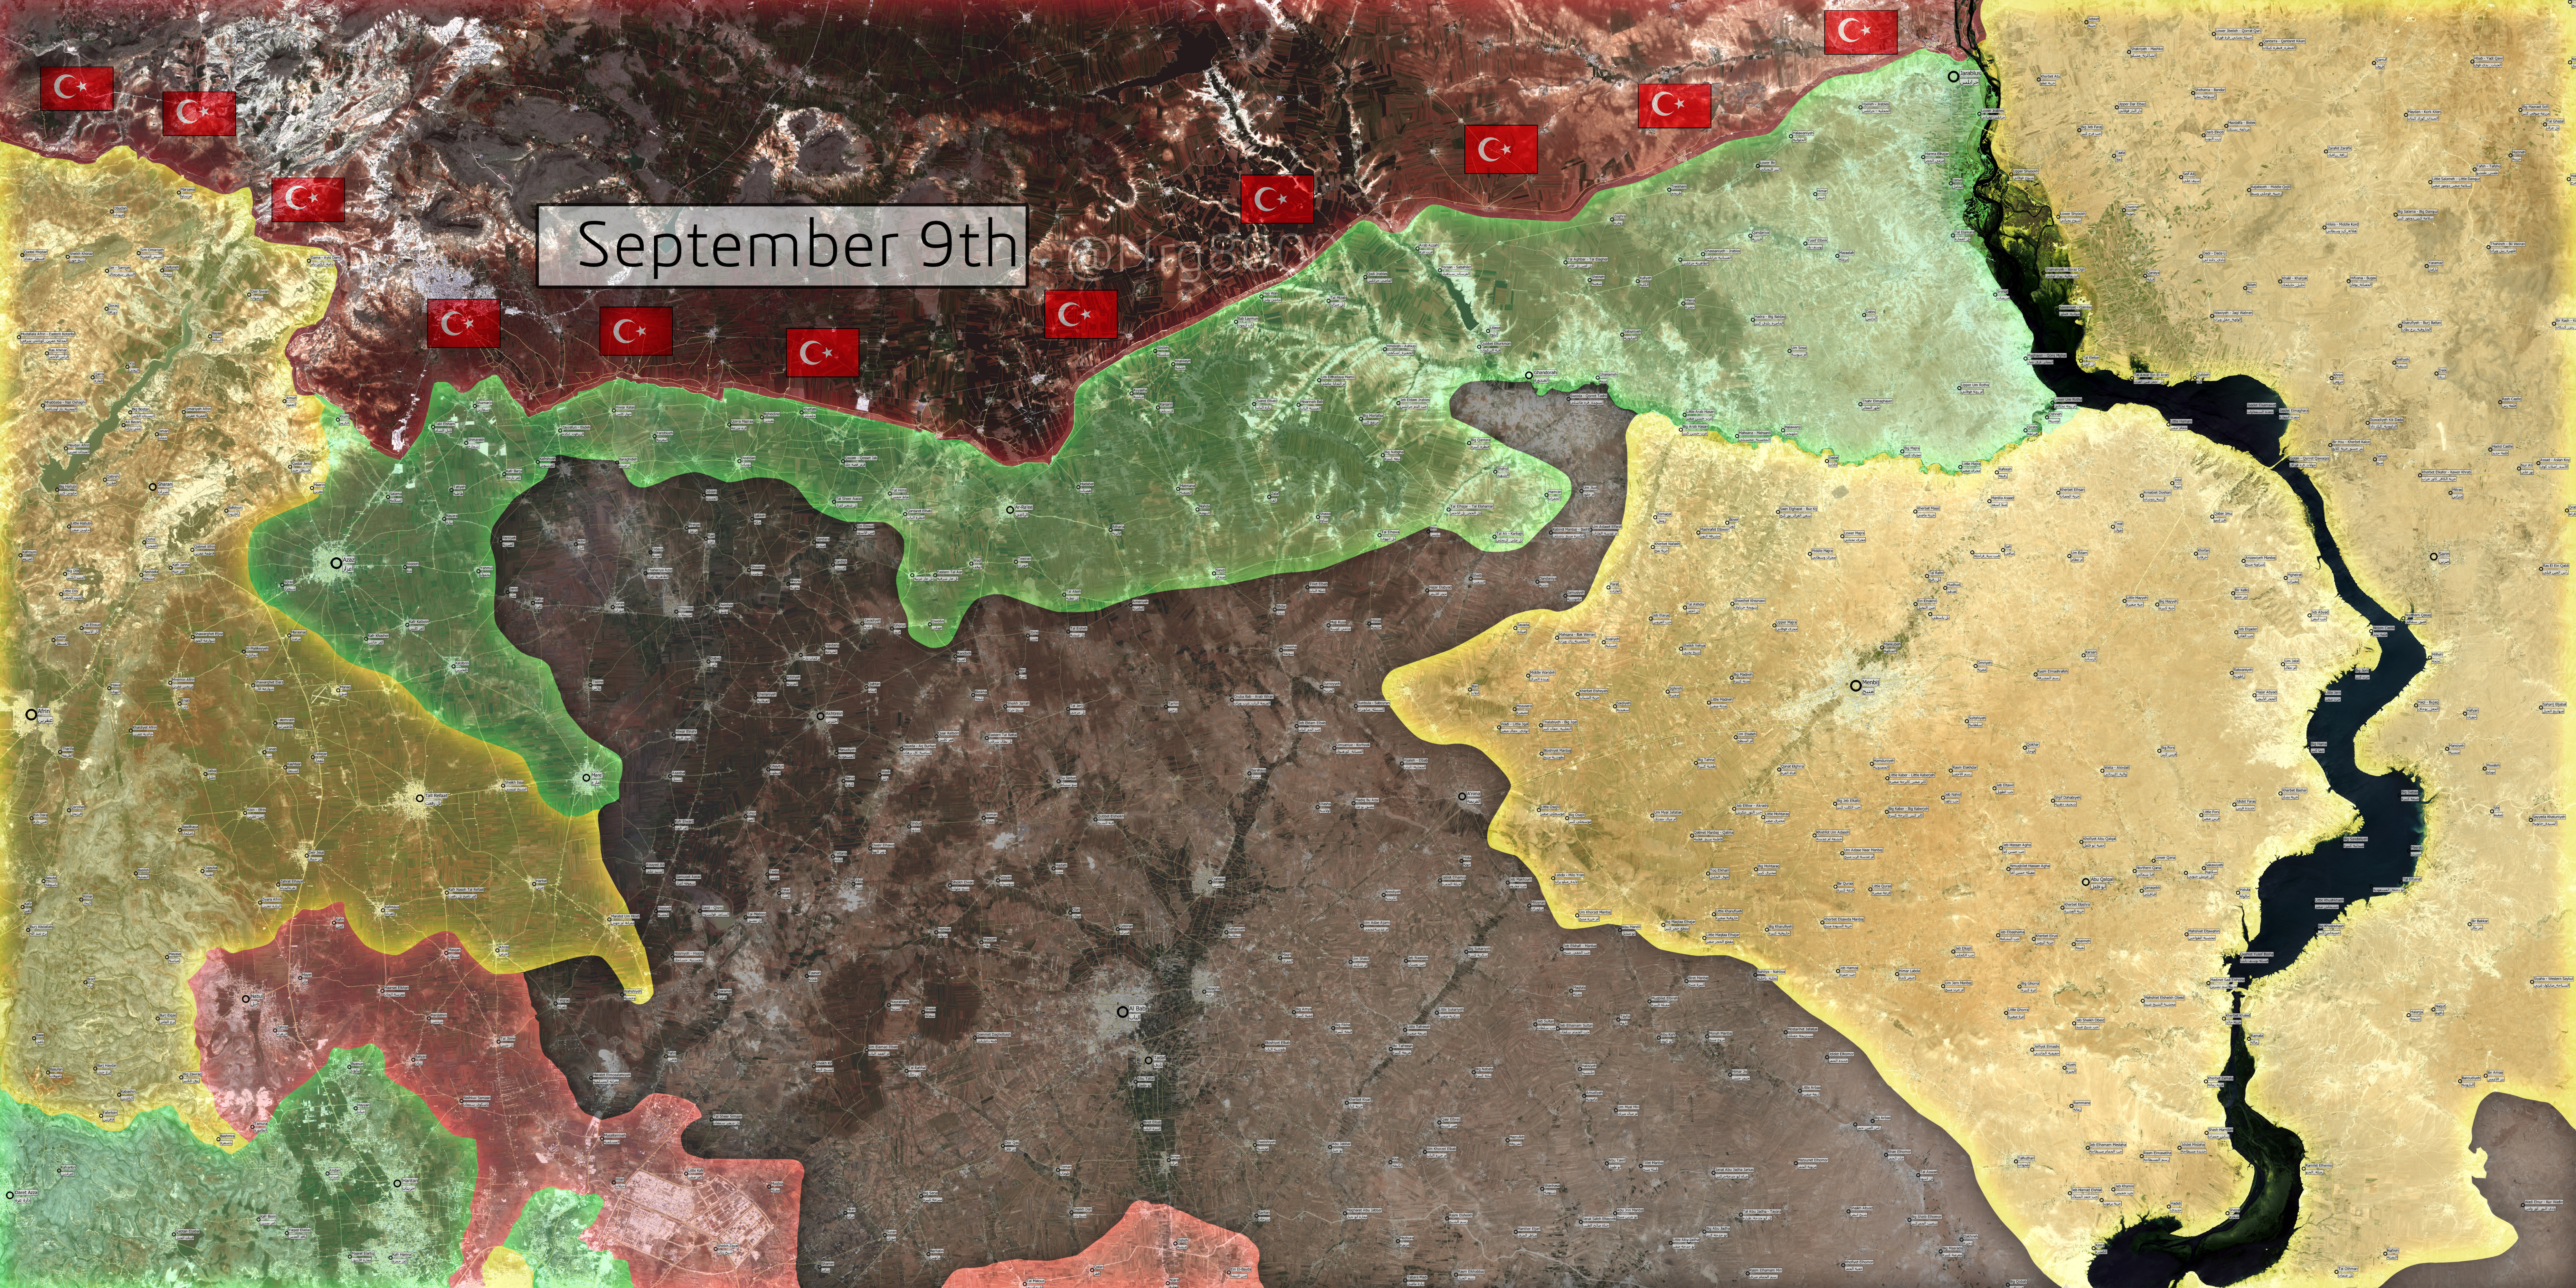 Turkey-led Forces Consolidating Gains in Northern Aleppo, Syria